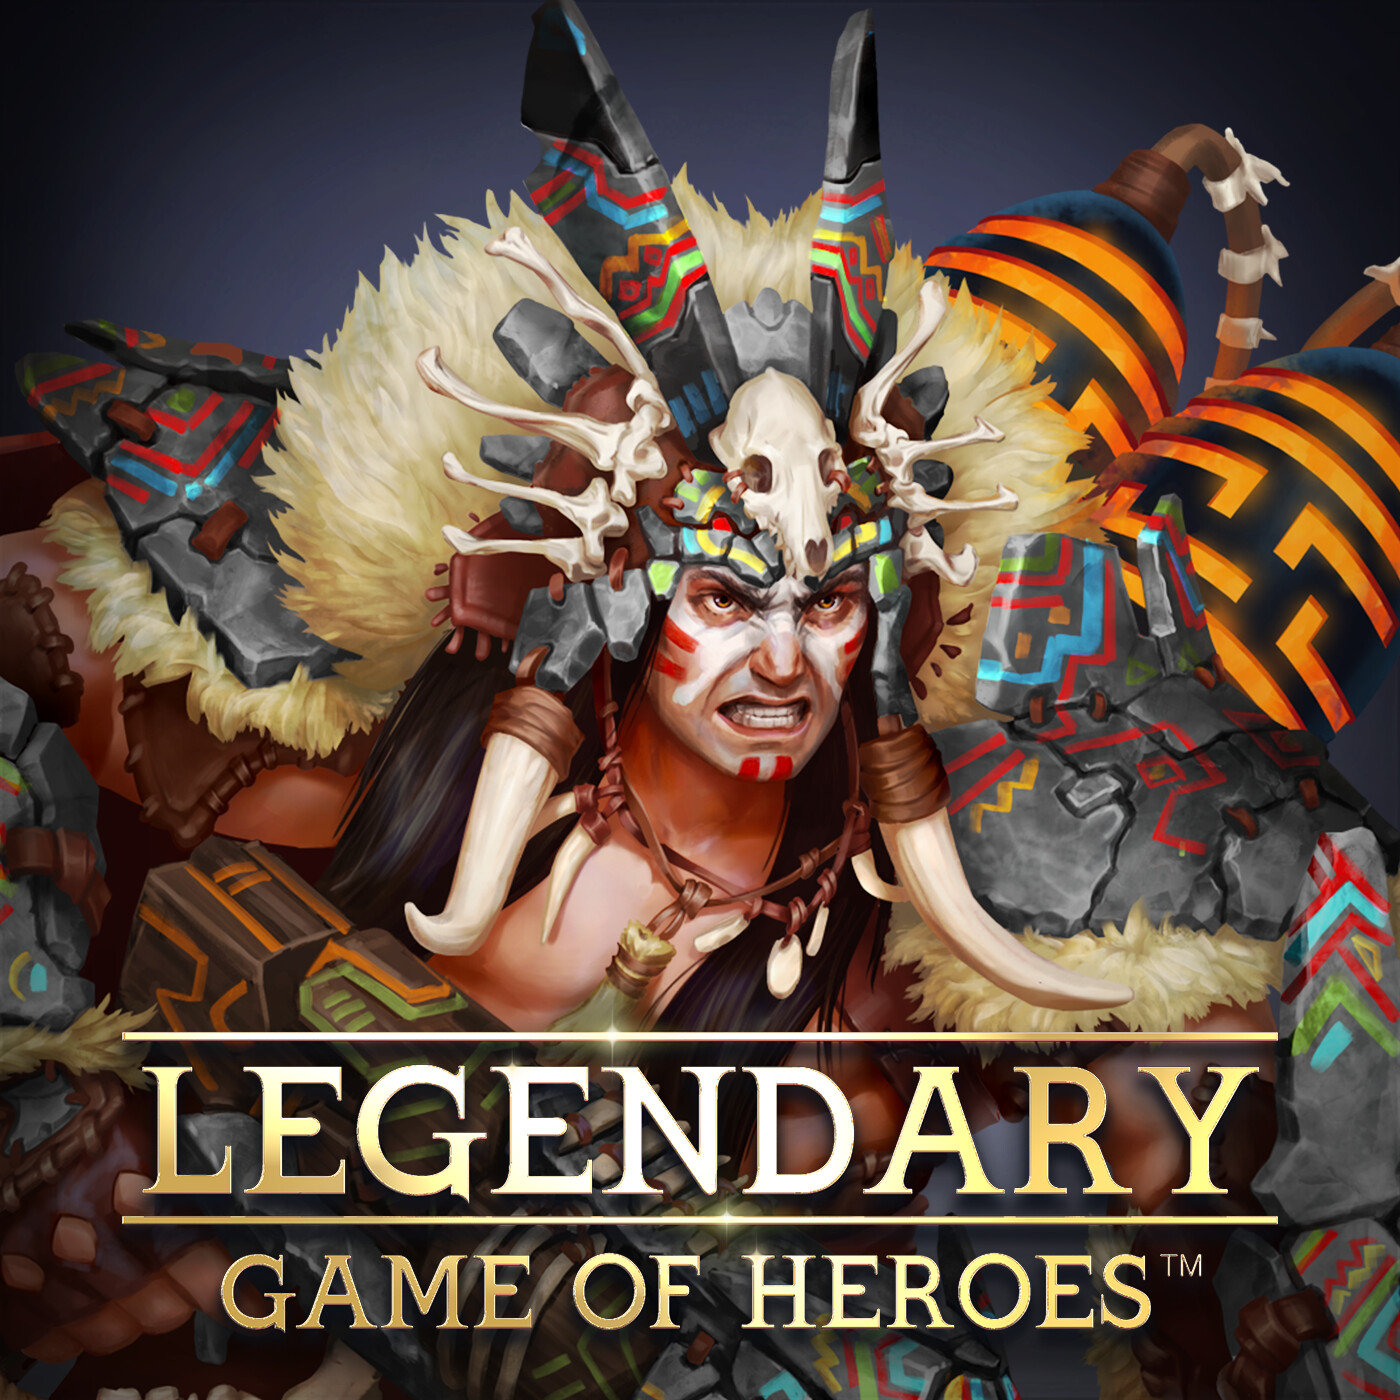 Legendary: Game of Heroes | 2D Character